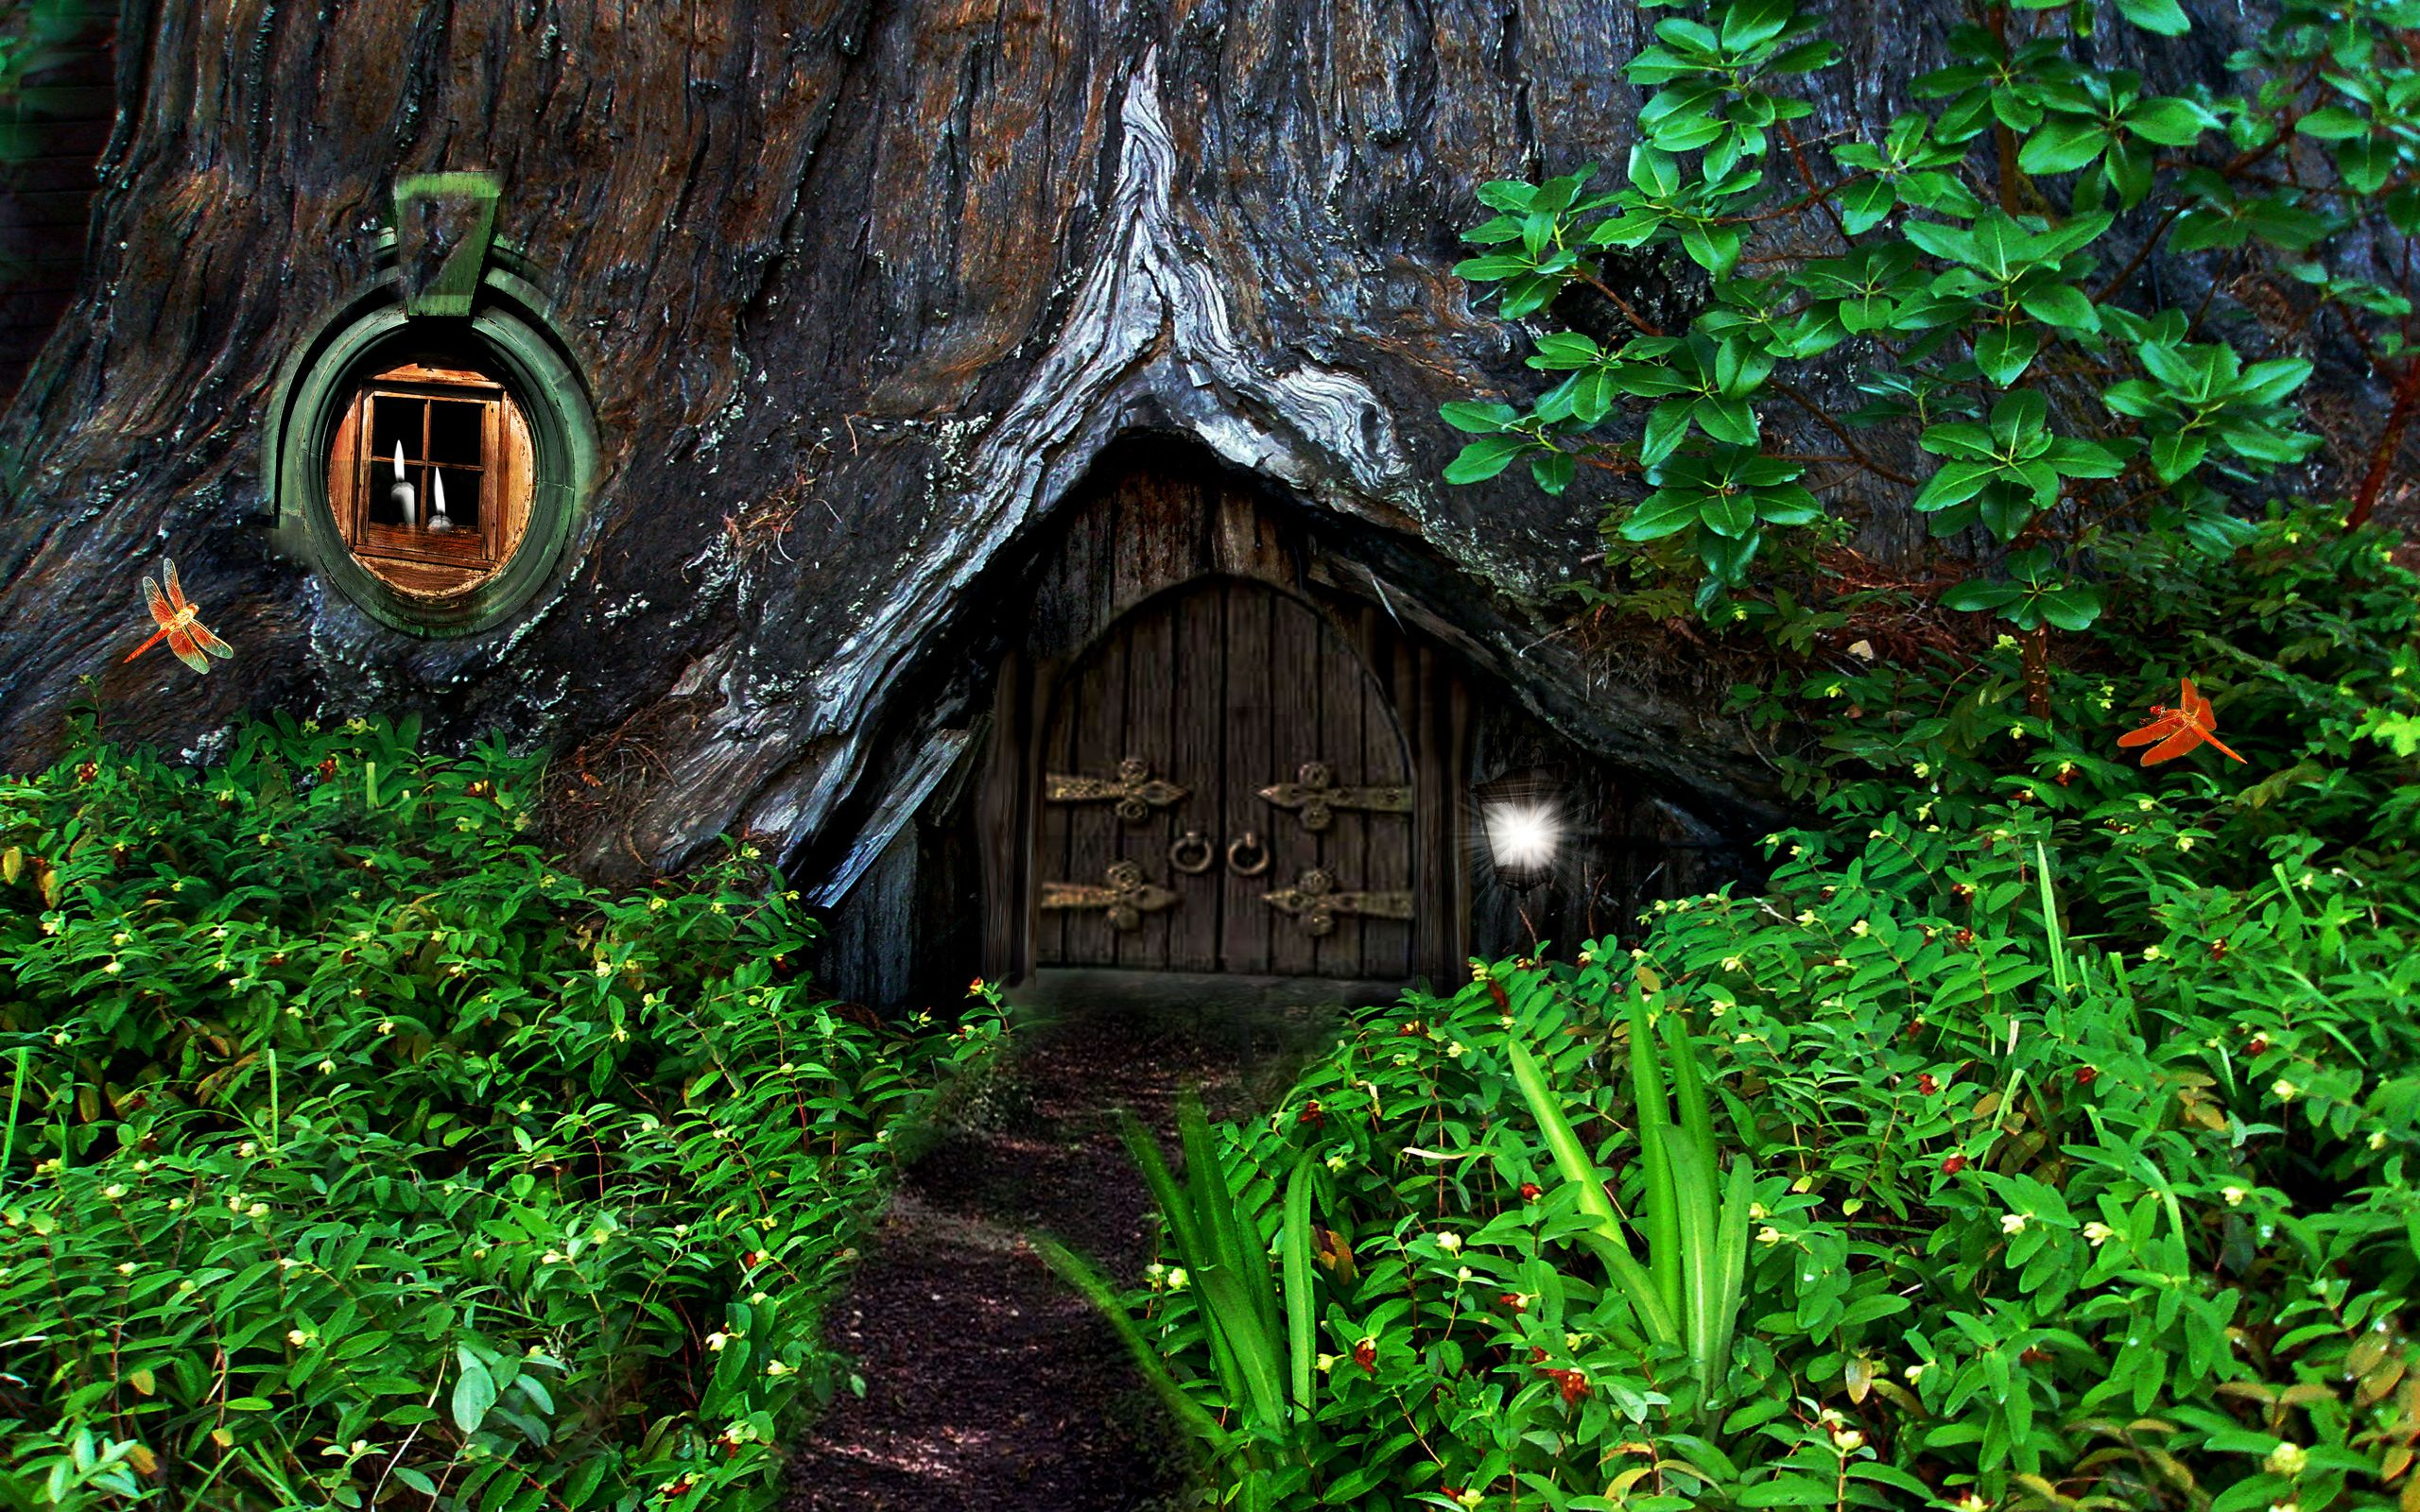 Fantasy Homes hobbit fantasy forest trees house home